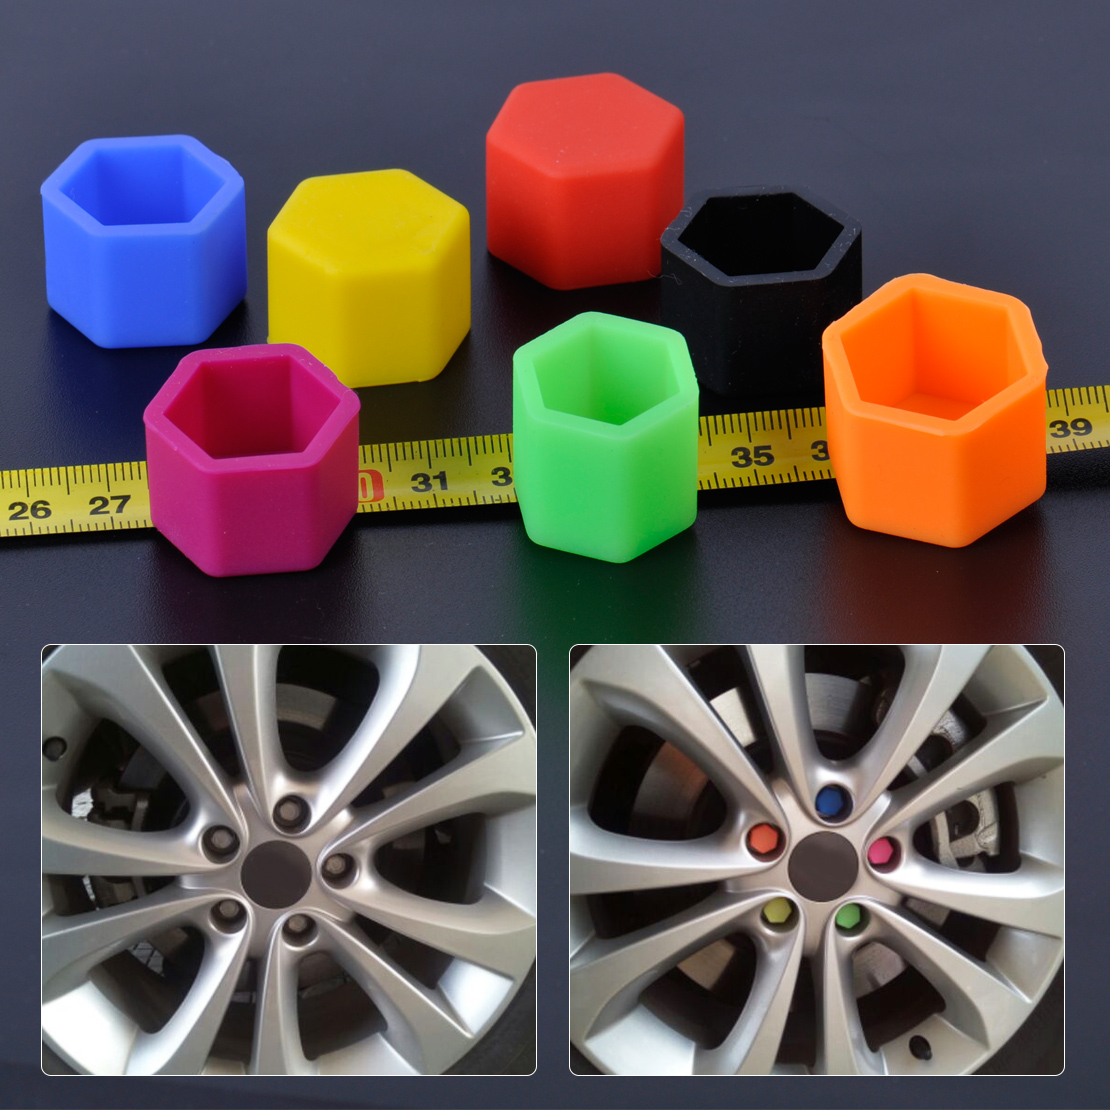 20pcs Universal 21mm Wheel Nut Covers Lug Nut Caps Screw Protector